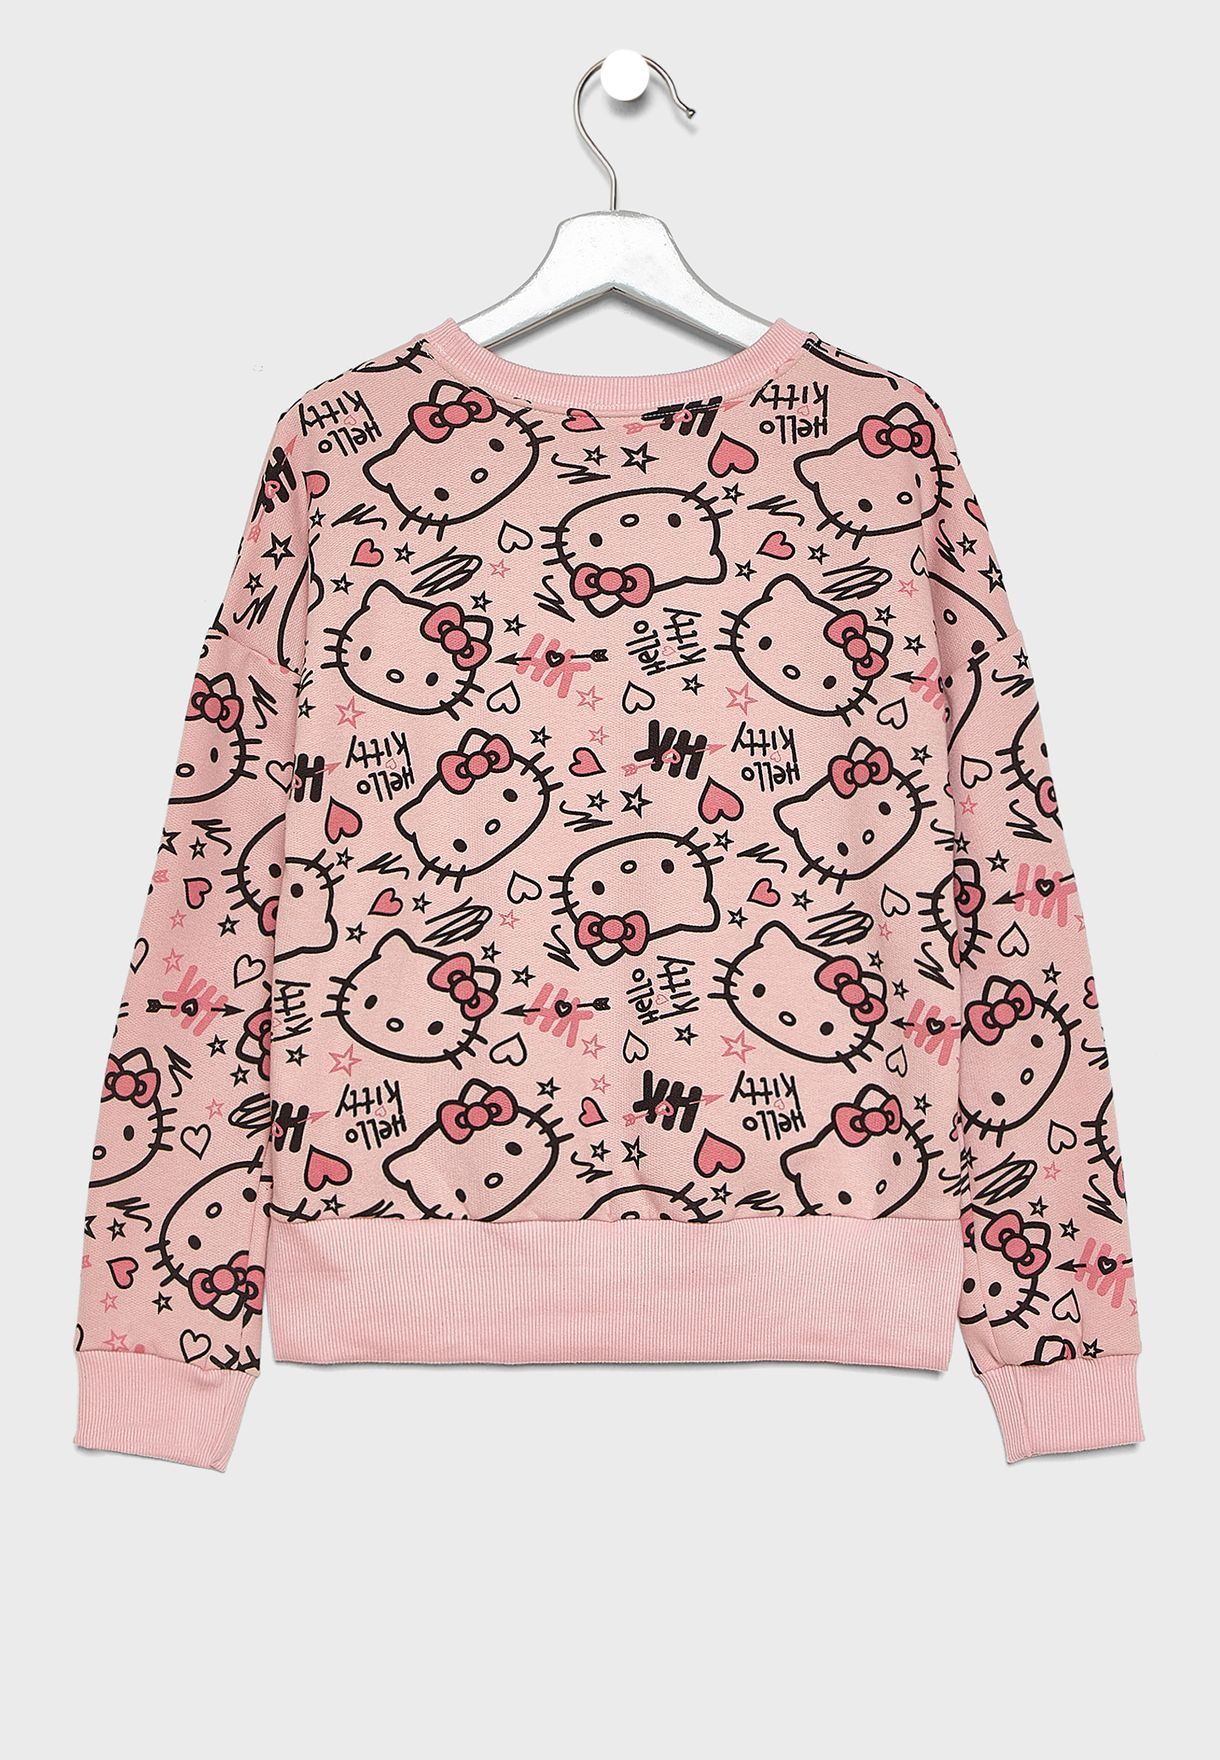 Kids Kitty Printed Sweatshirt + Sweatpants Set